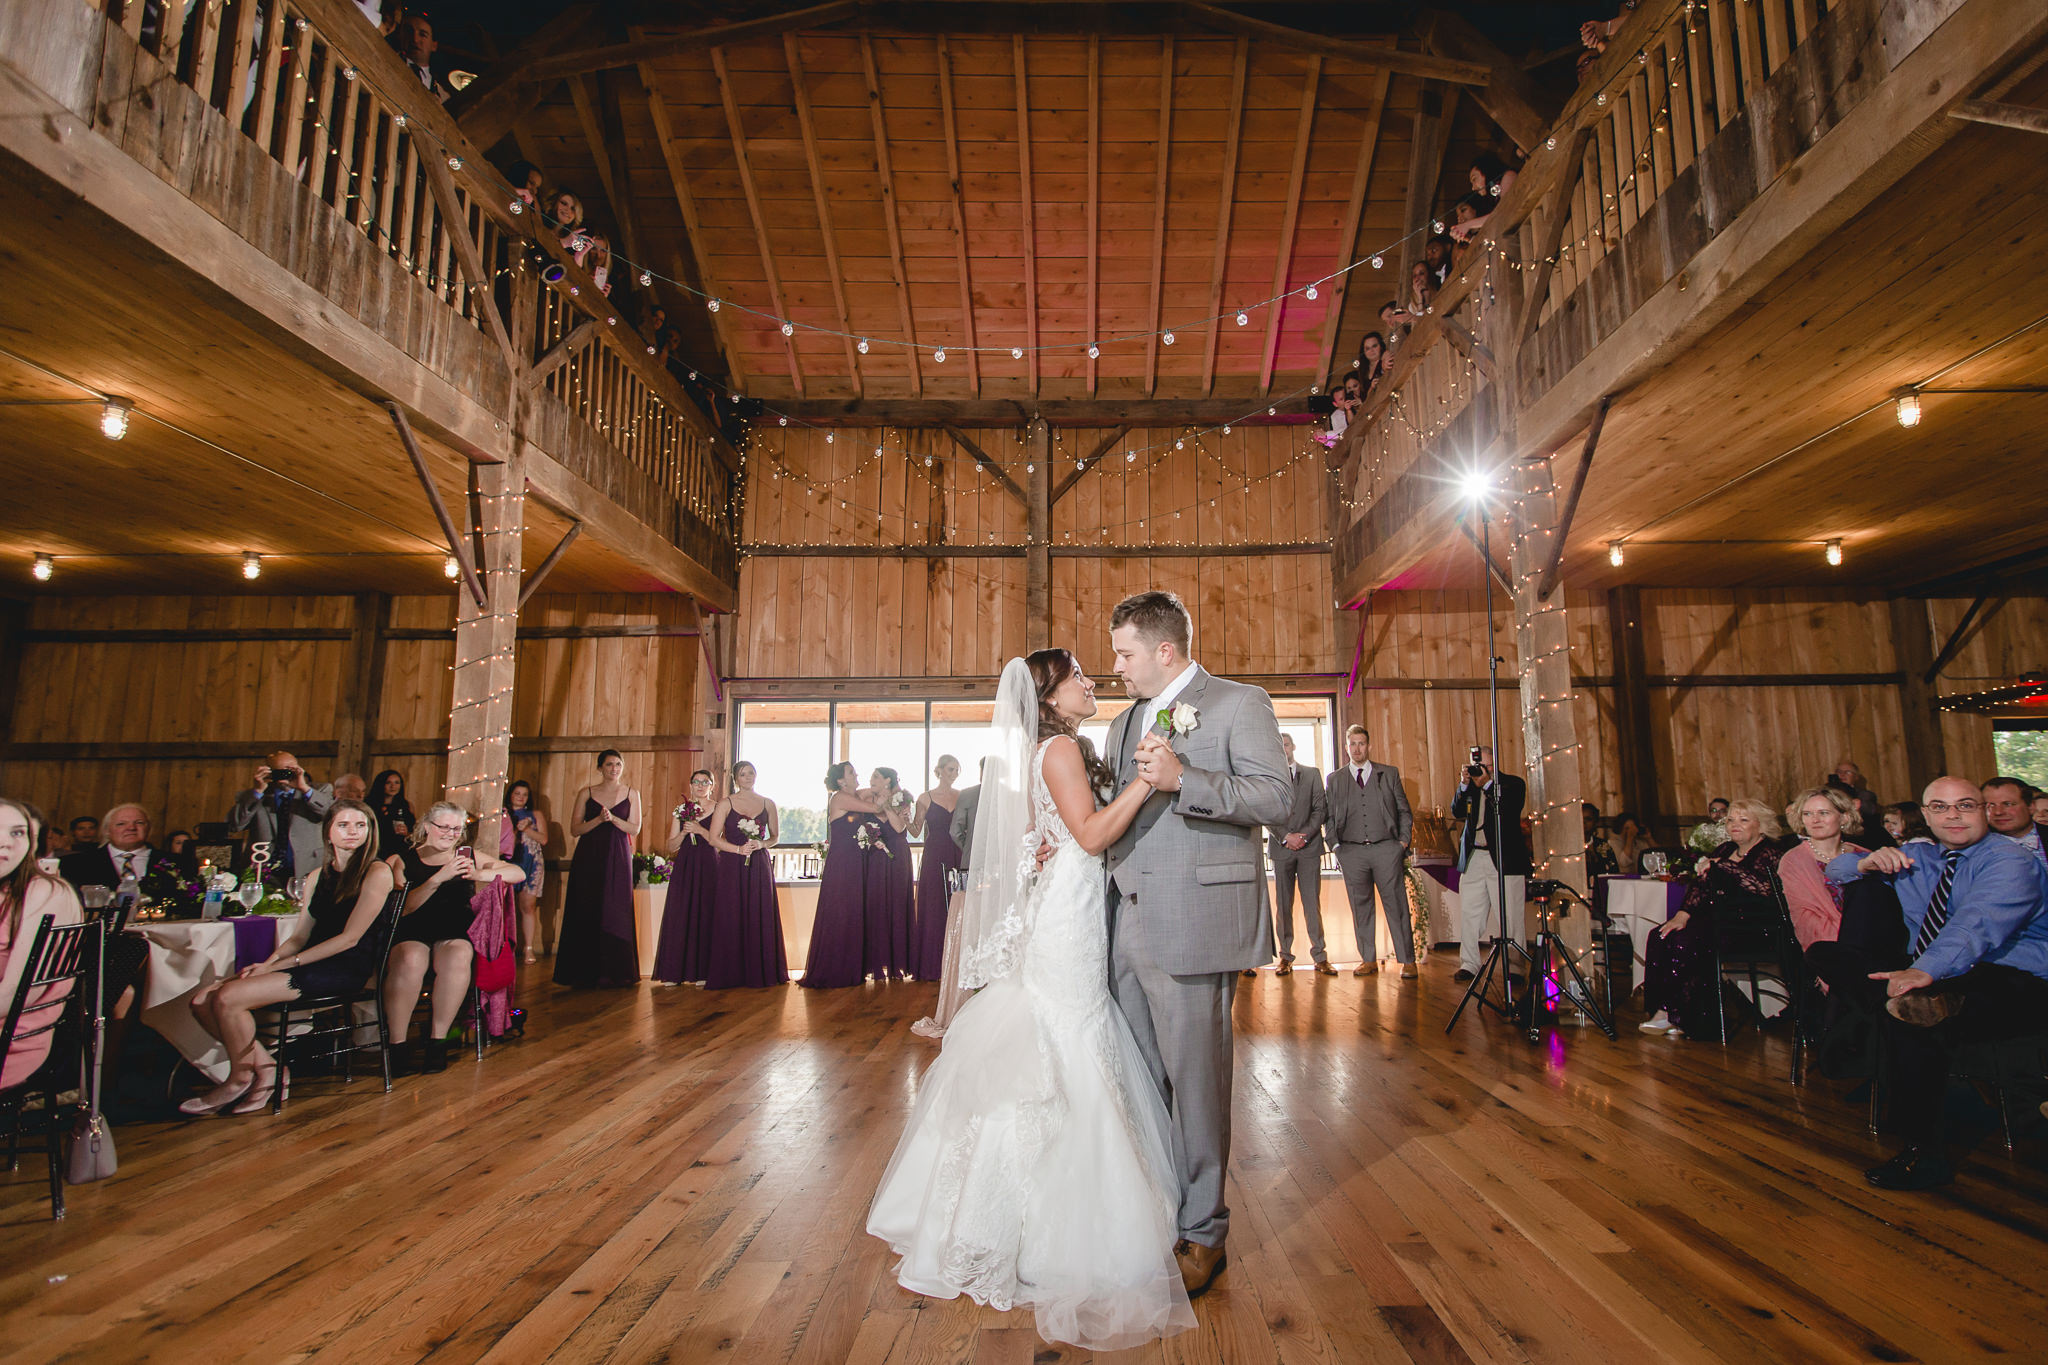 Bride and groom share a first dance at their White Barn wedding reception